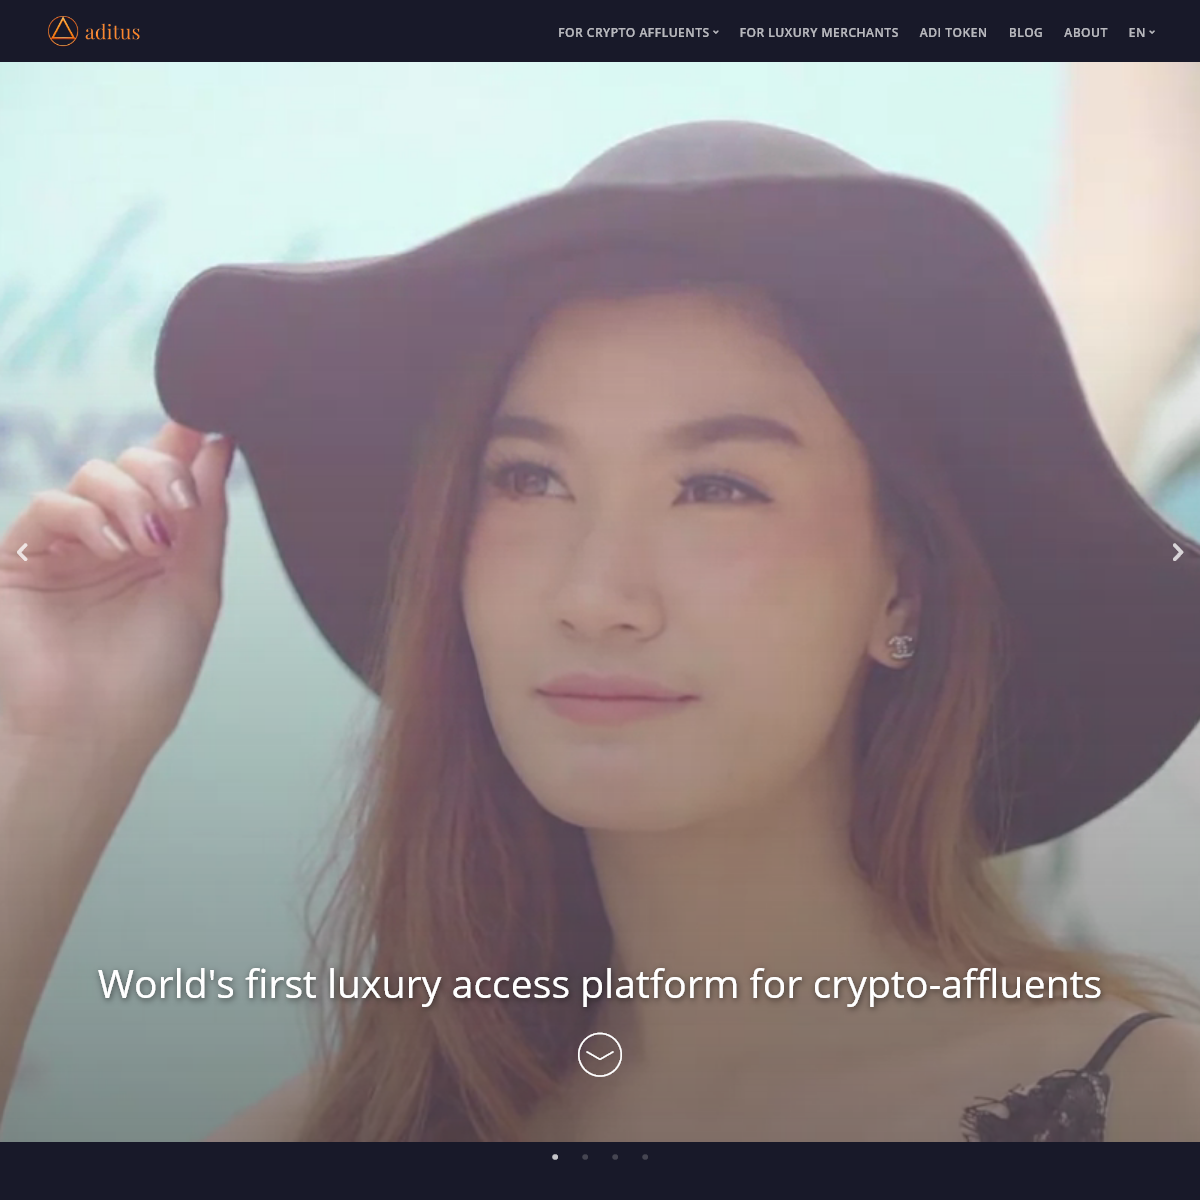 World`s first luxury access platform for crypto-affluents - Aditus